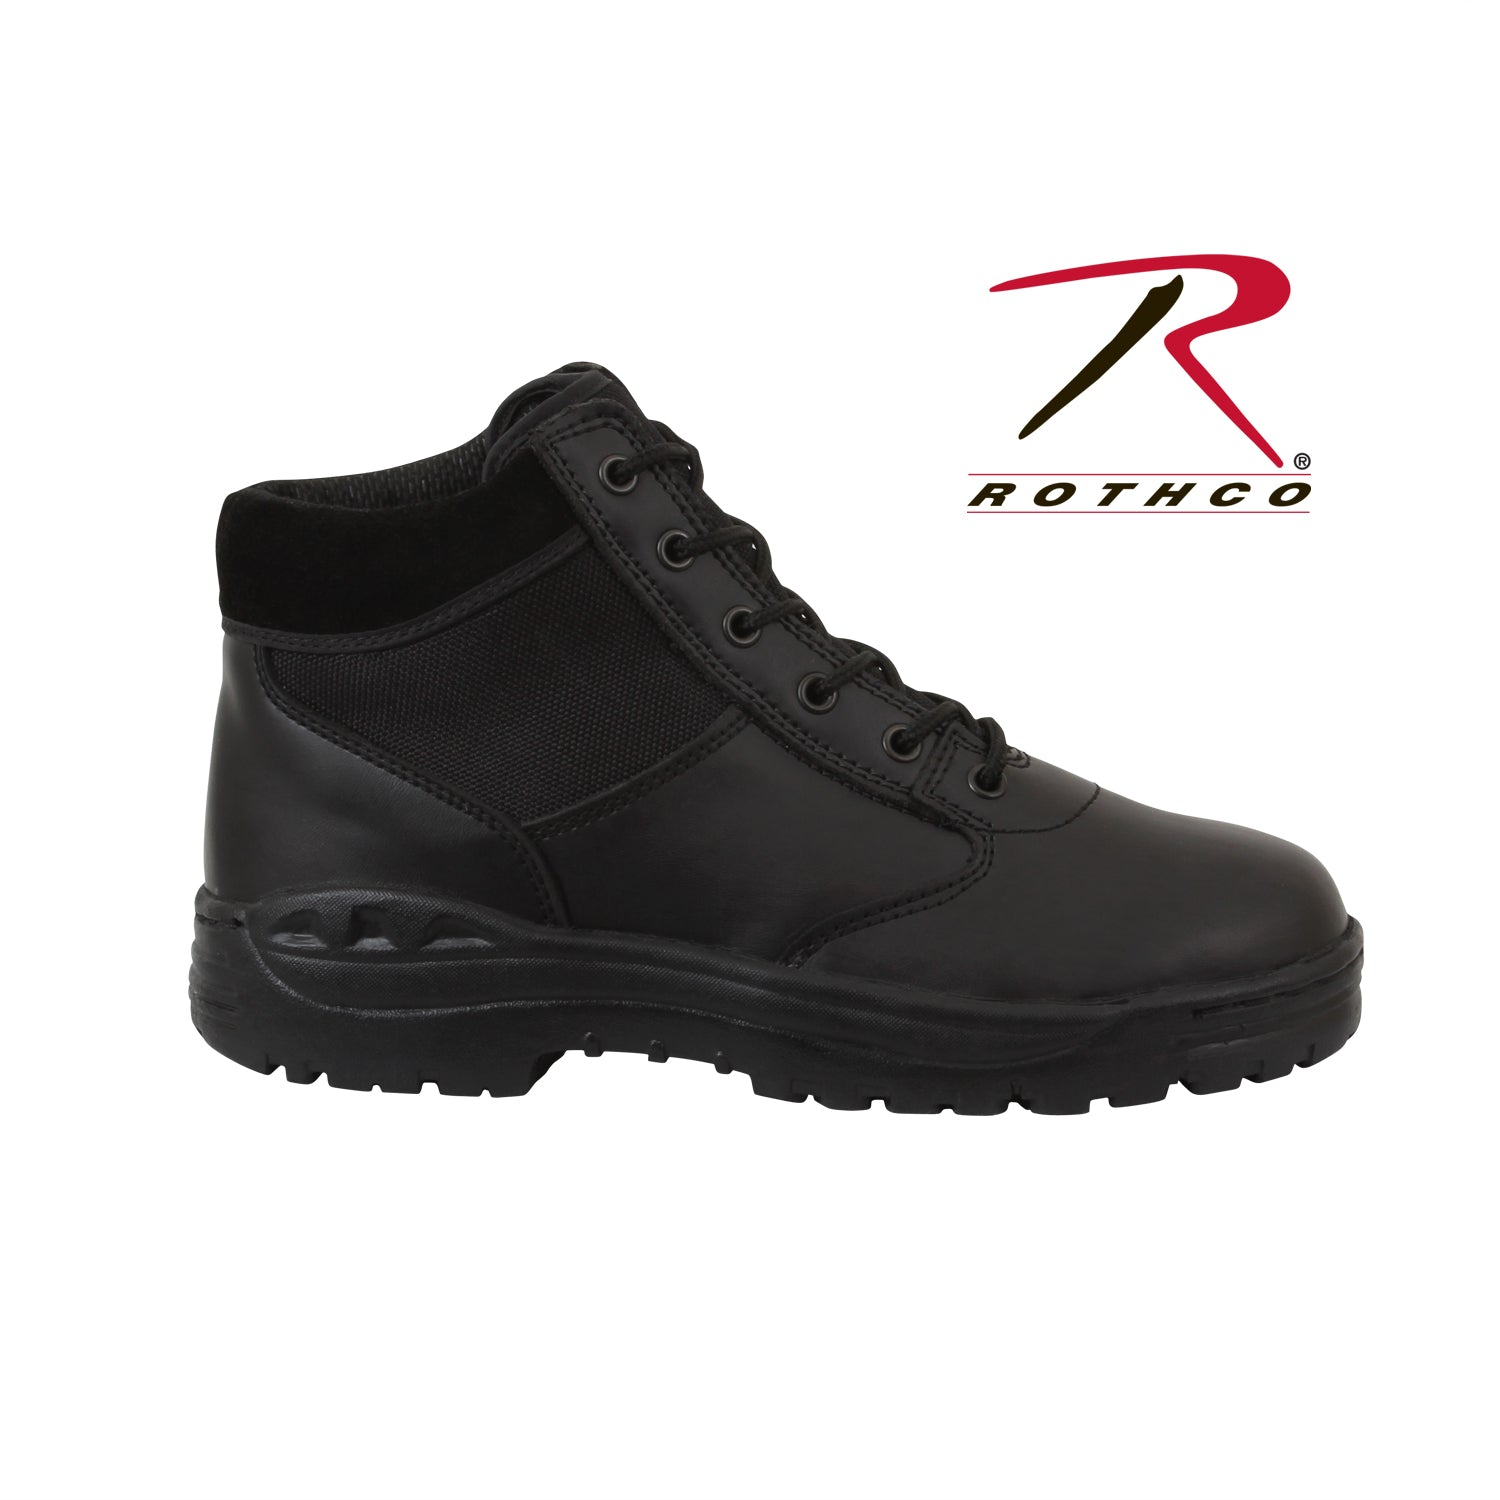 Rothco Forced Entry Security Boot / 6'' - red-diamond-uniform-police-supply